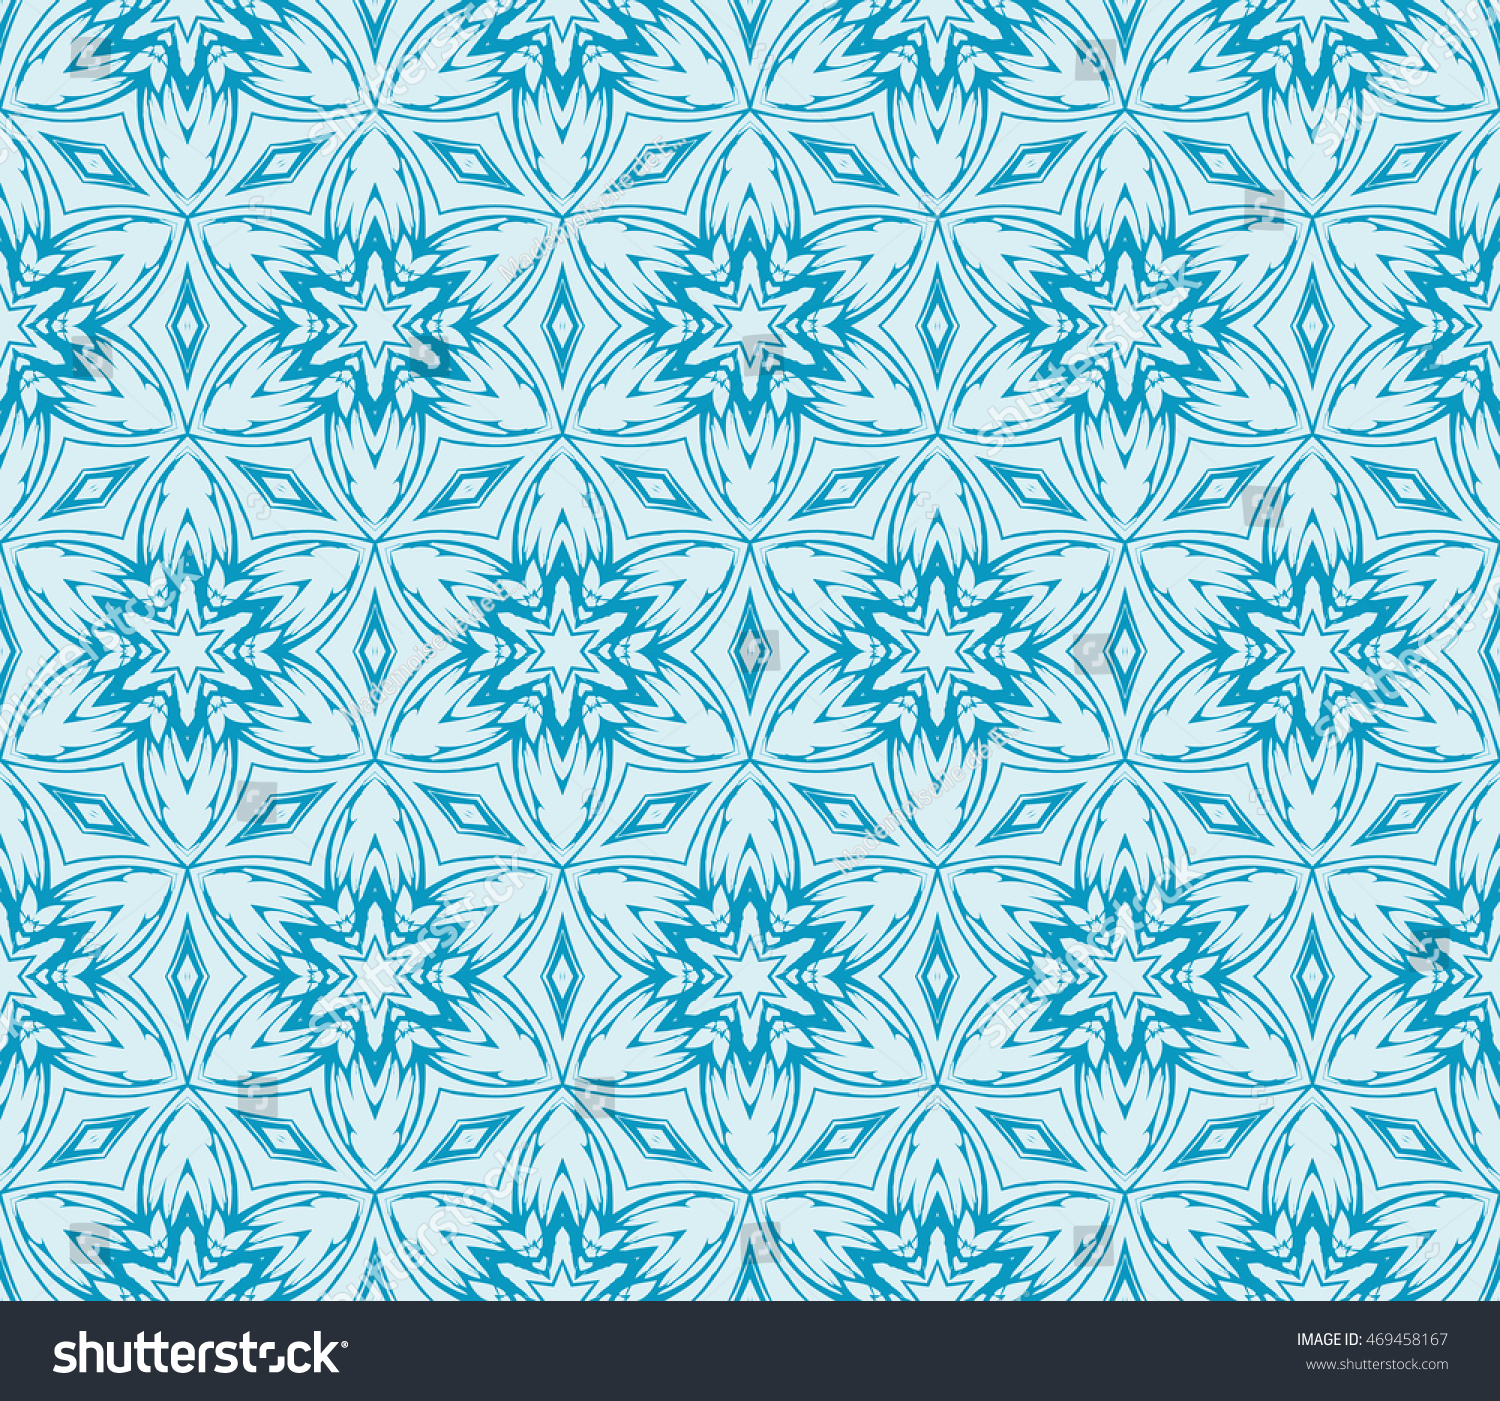 Abstract Flowers Blue Seamless Vector Illustration To Design